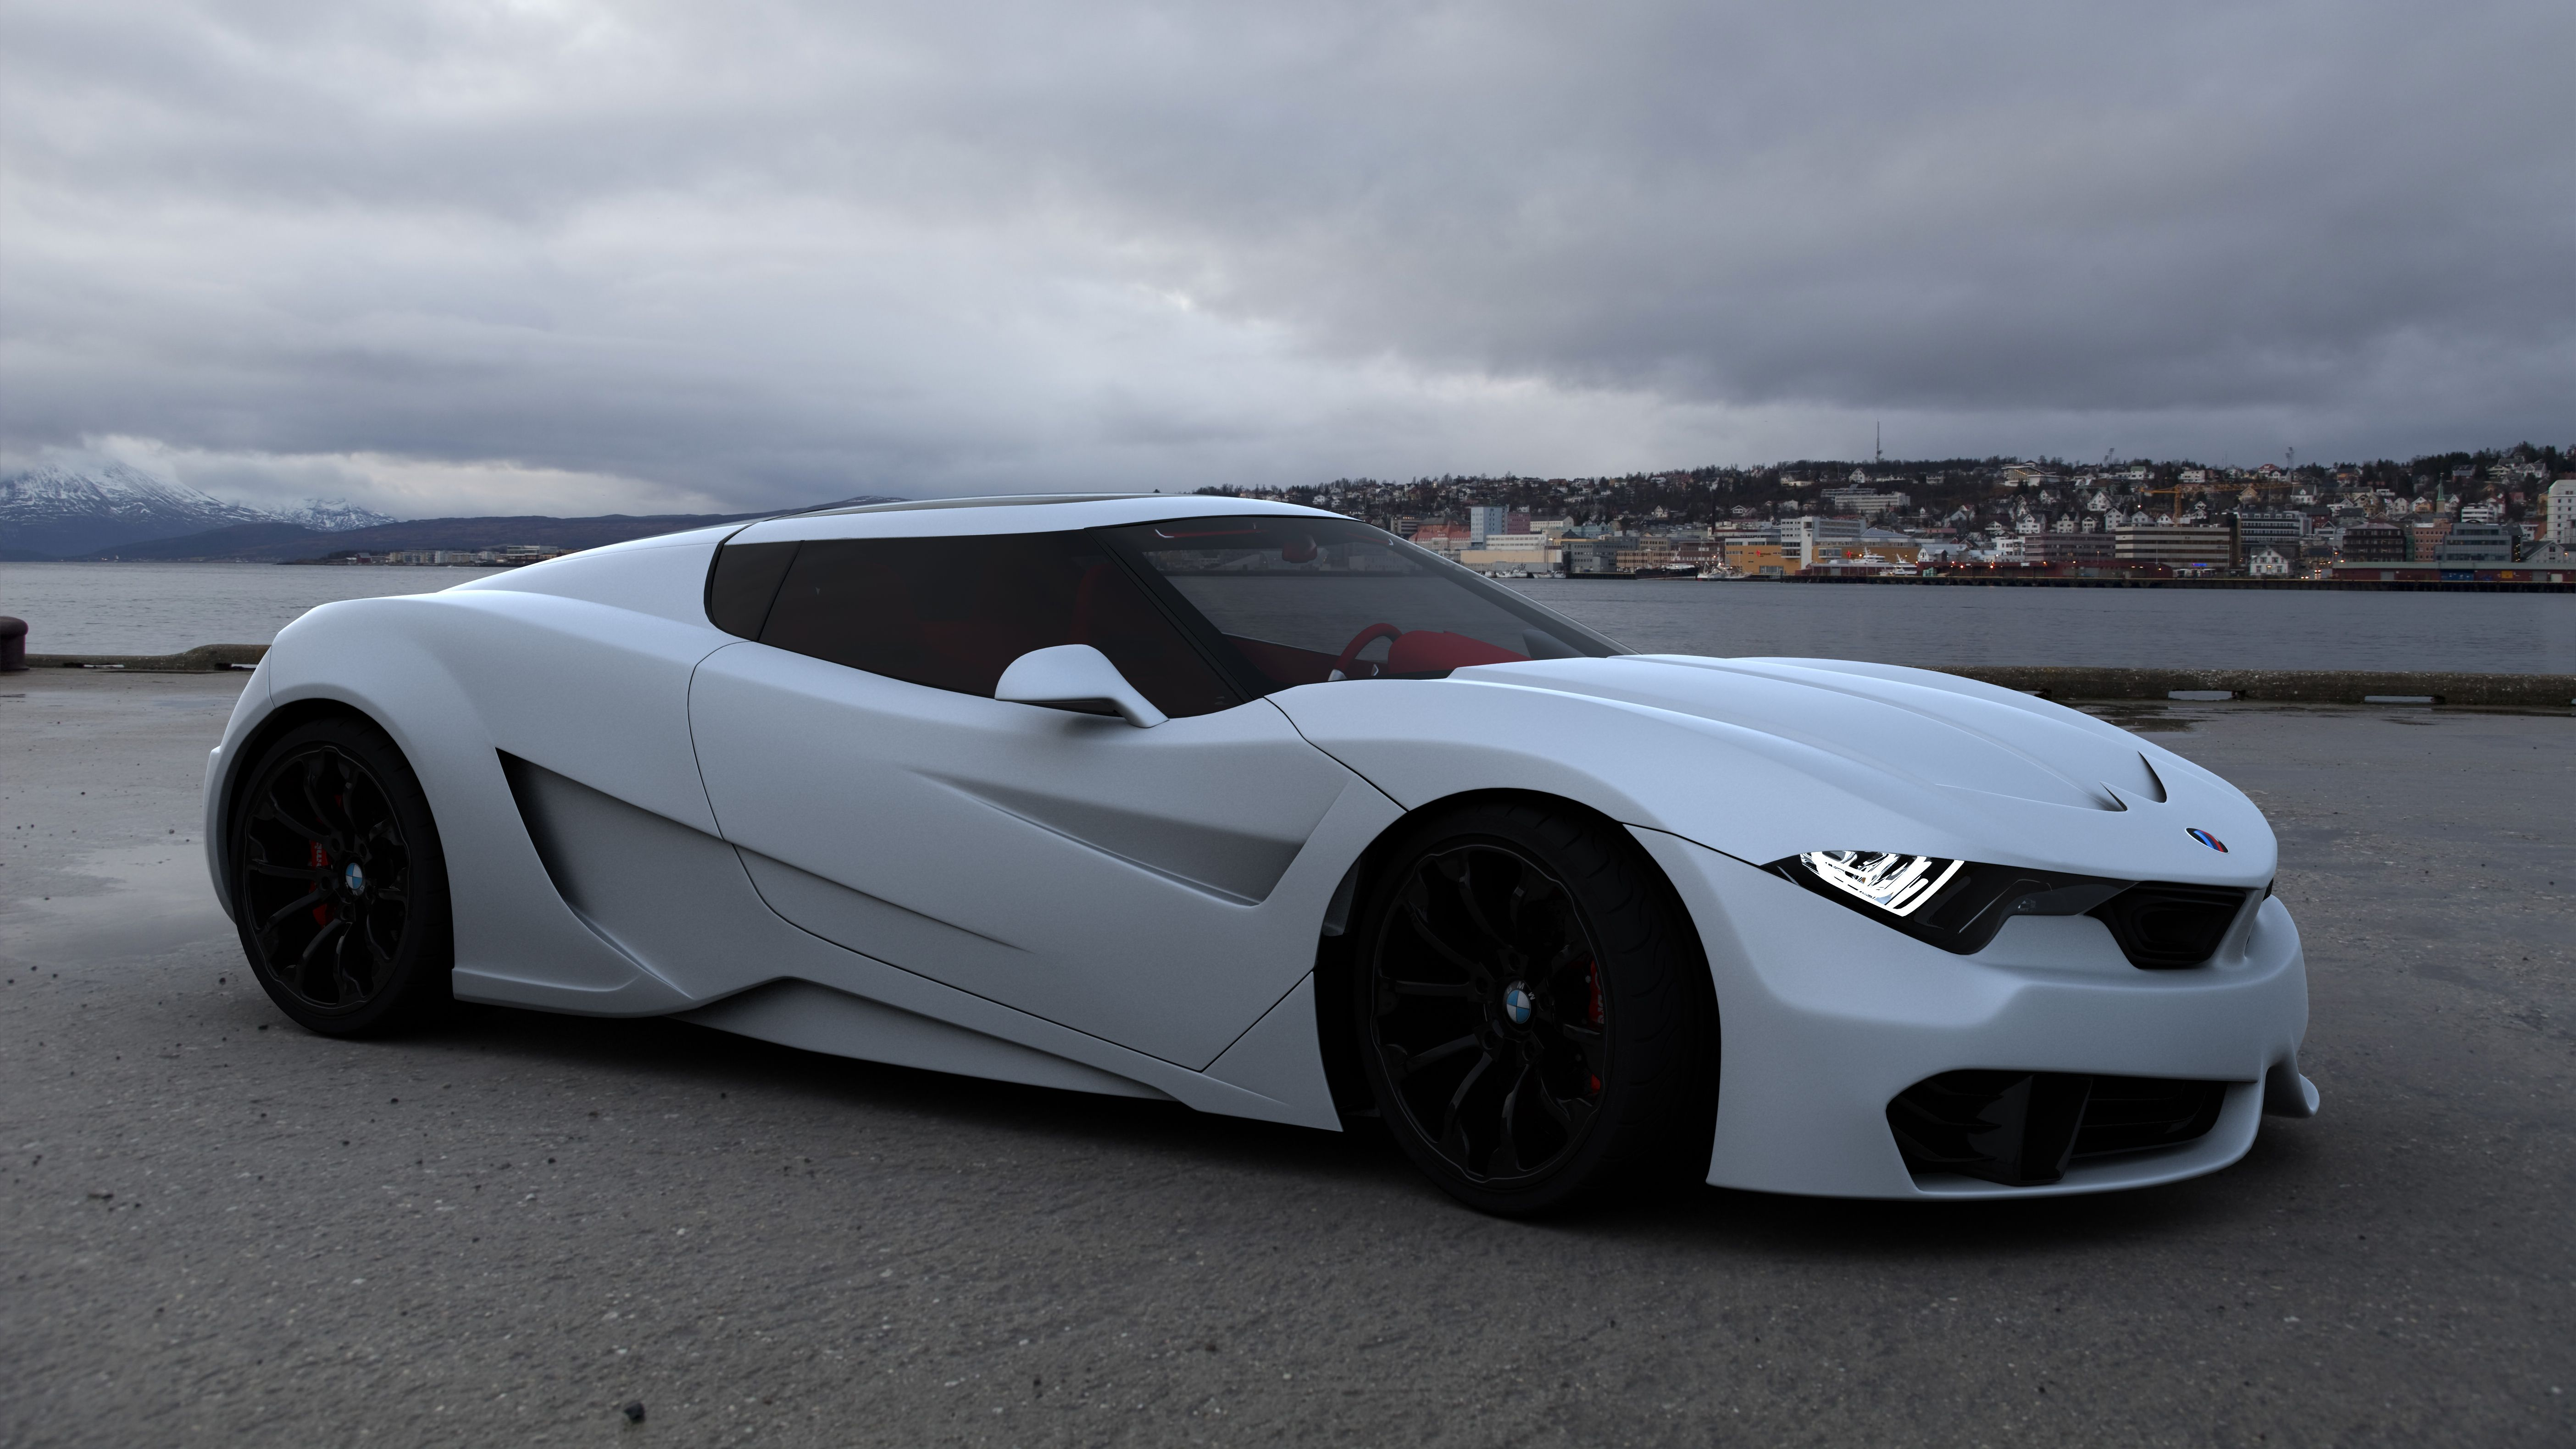 BMW GT Concept revised version by Emil Baddal